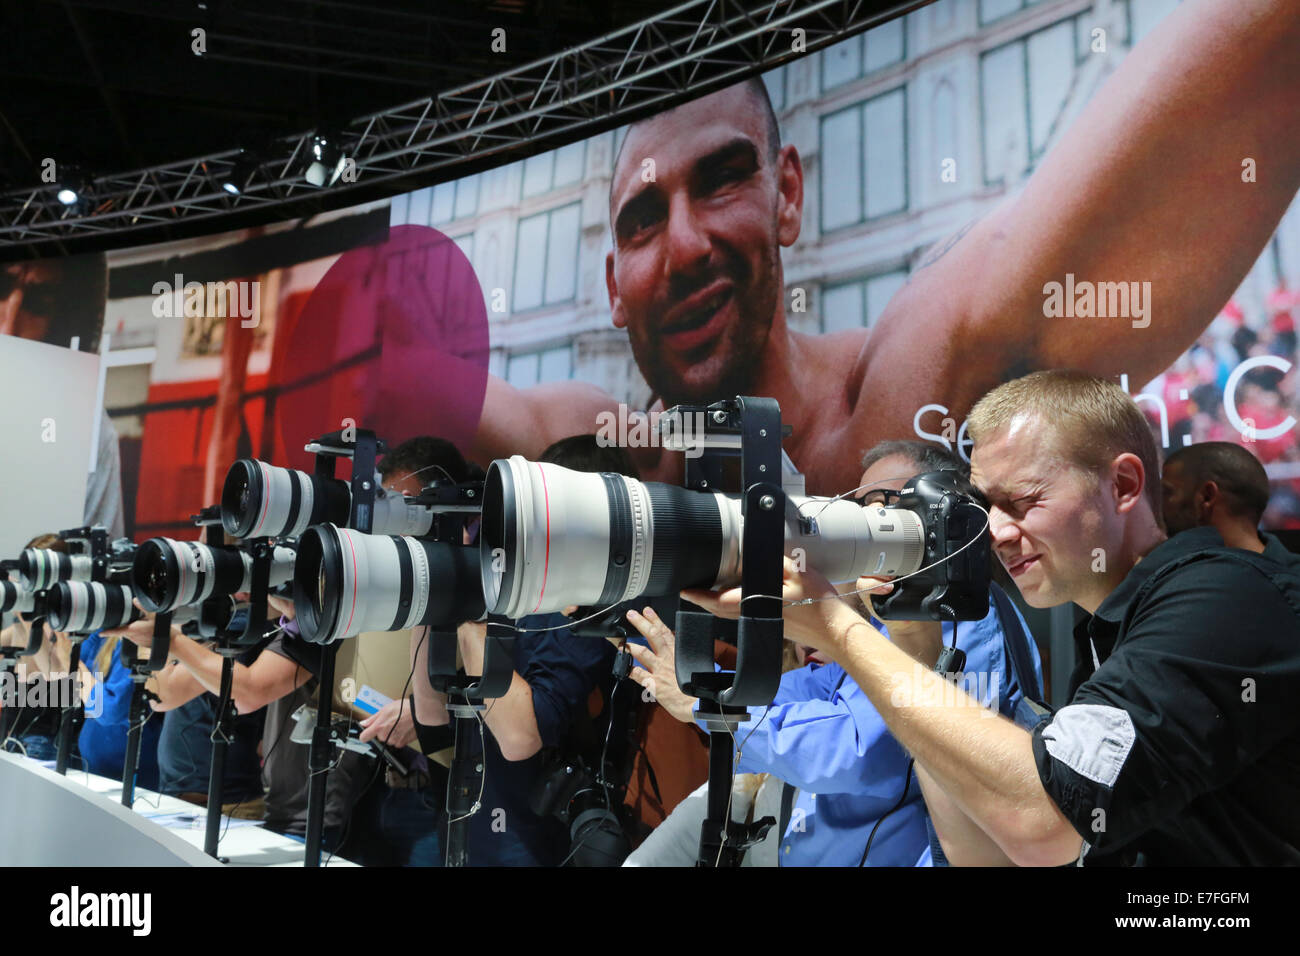 Photokina photography trade fair in Cologne, Germany. Visitors to the Canon stand try out a selection of large telephoto - Stock Image